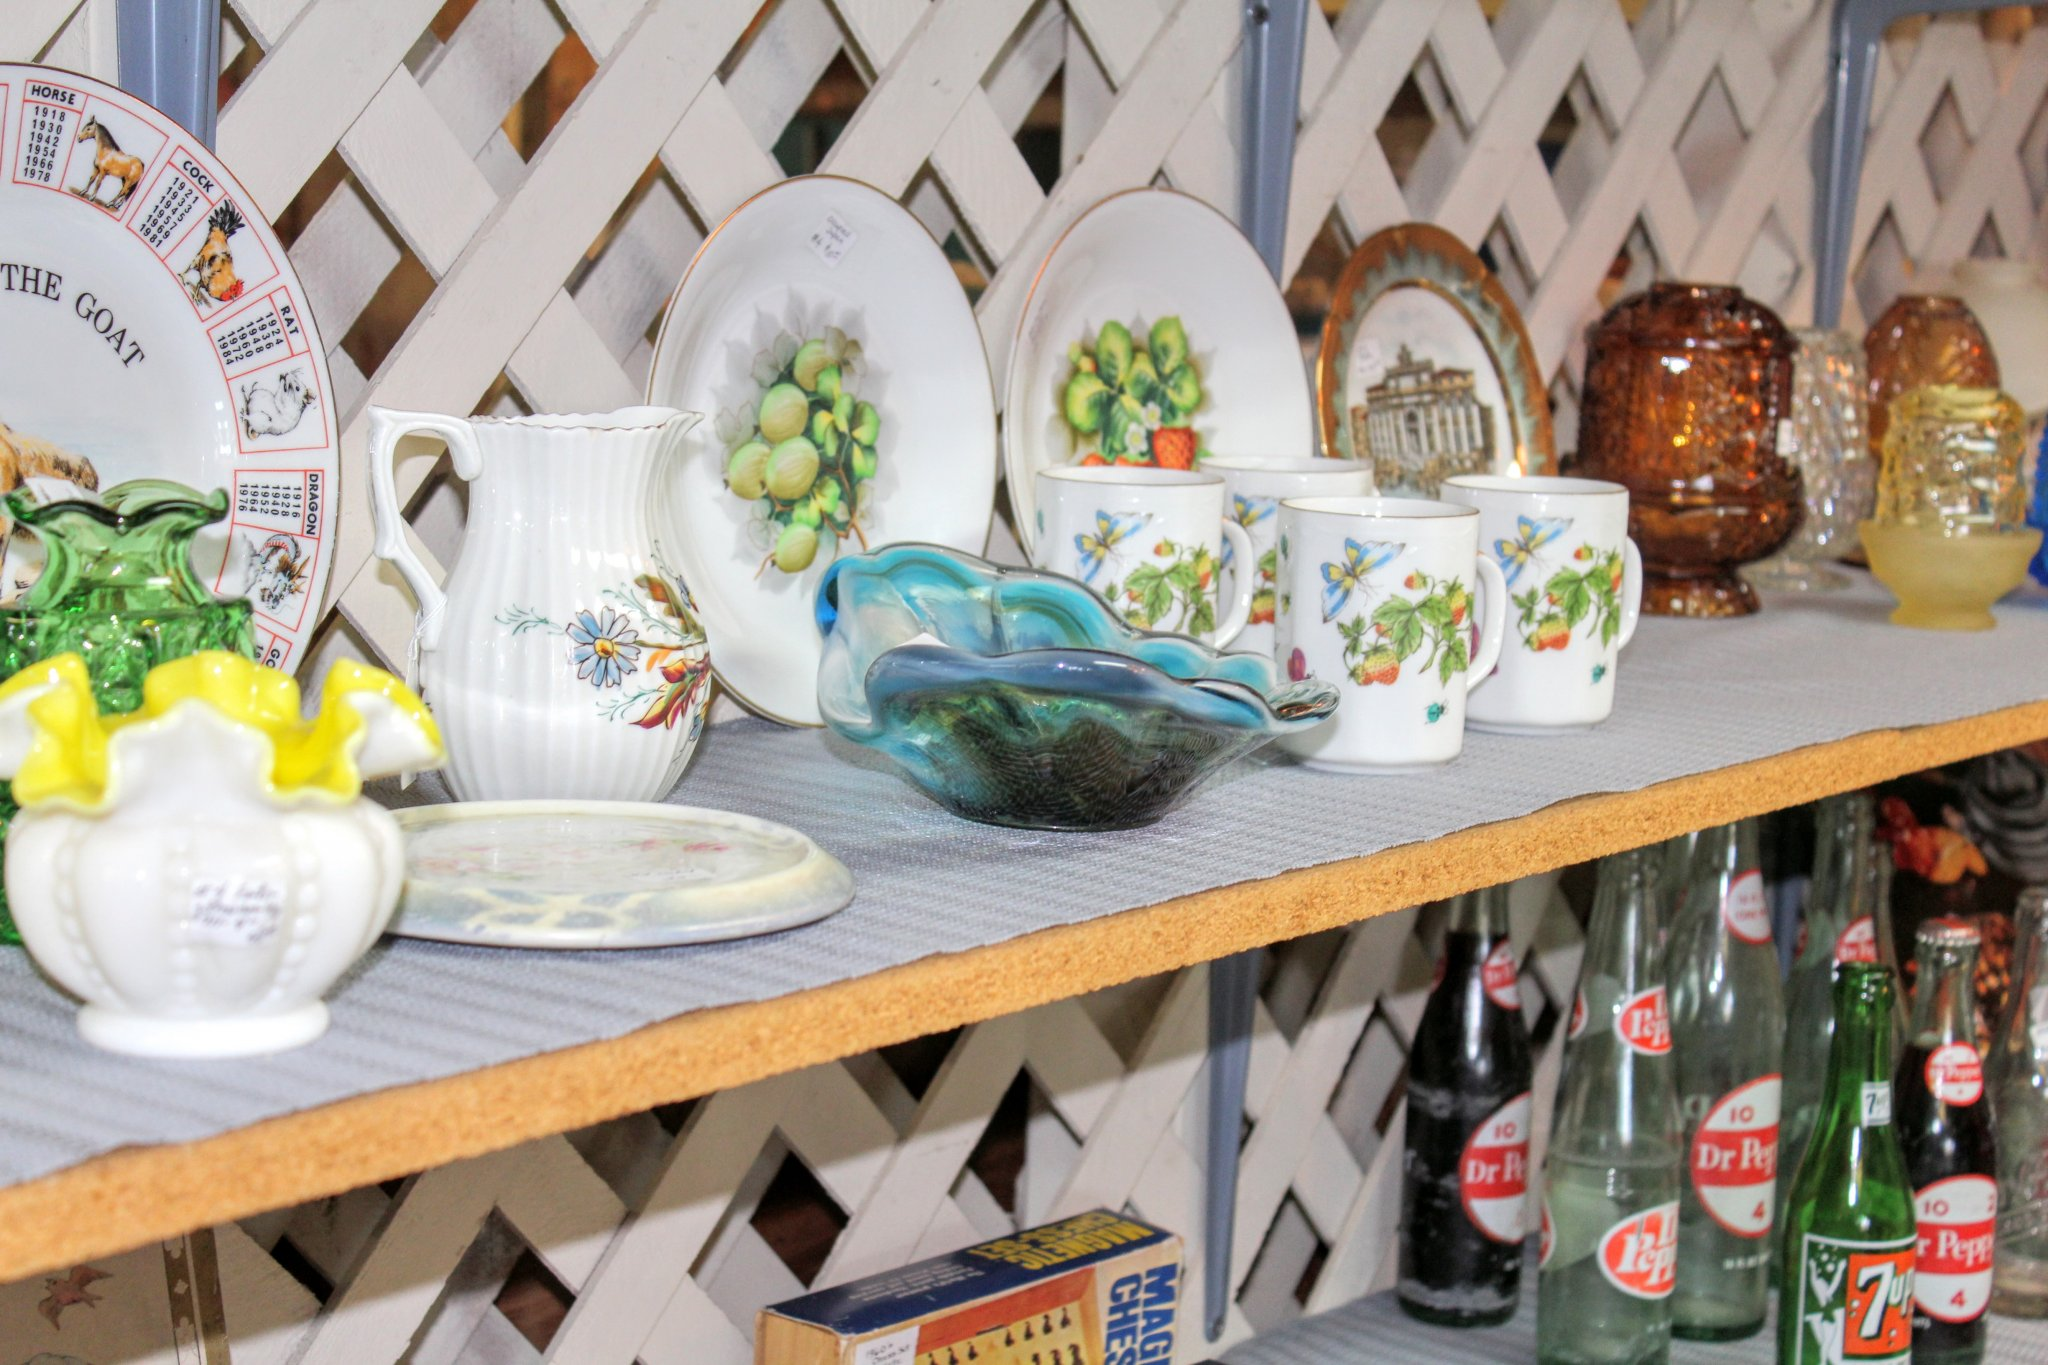 Offbeat Things to Do in Amarillo: Antique Plates